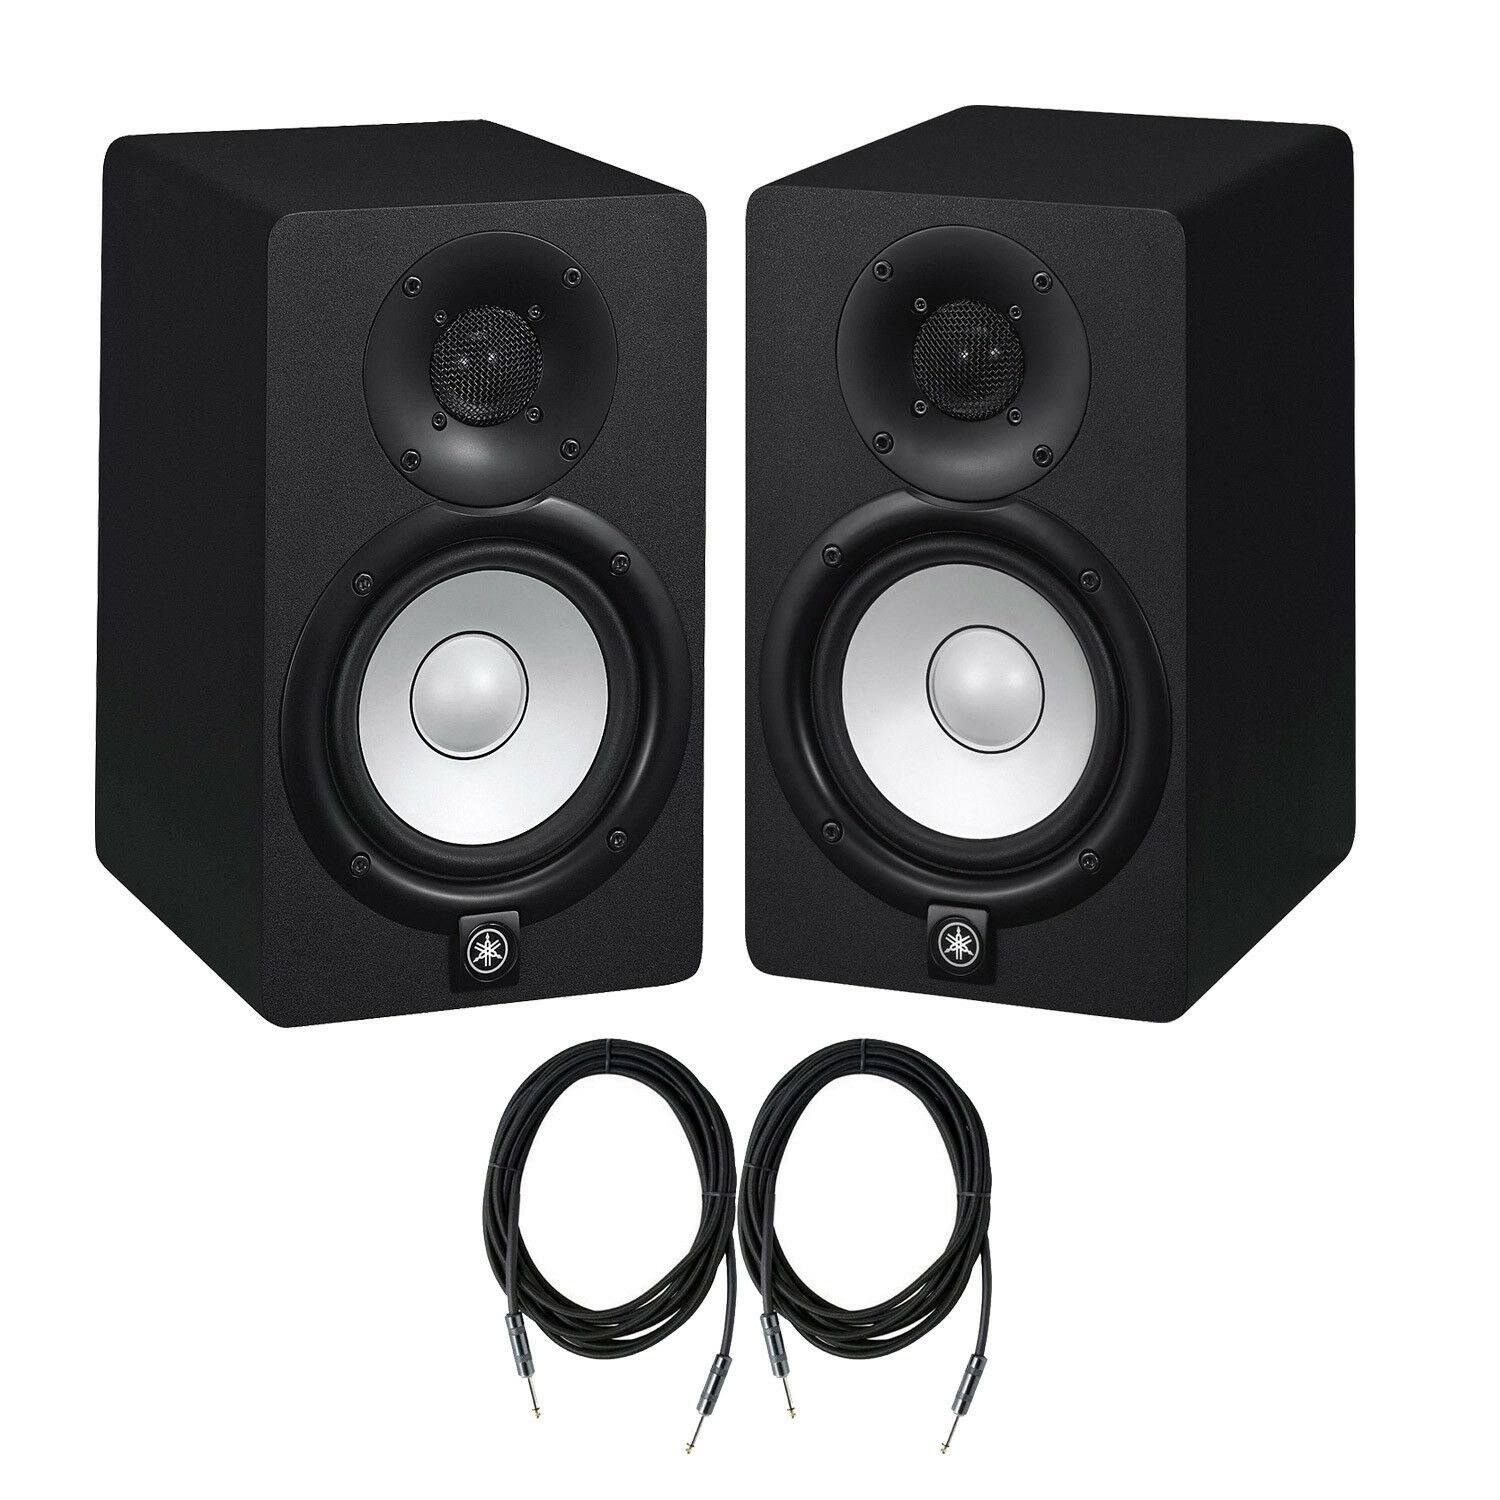 Yamaha HS Series HS5 2-way Bass-Reflex Nearfield Studio Monitor-Pair with cables